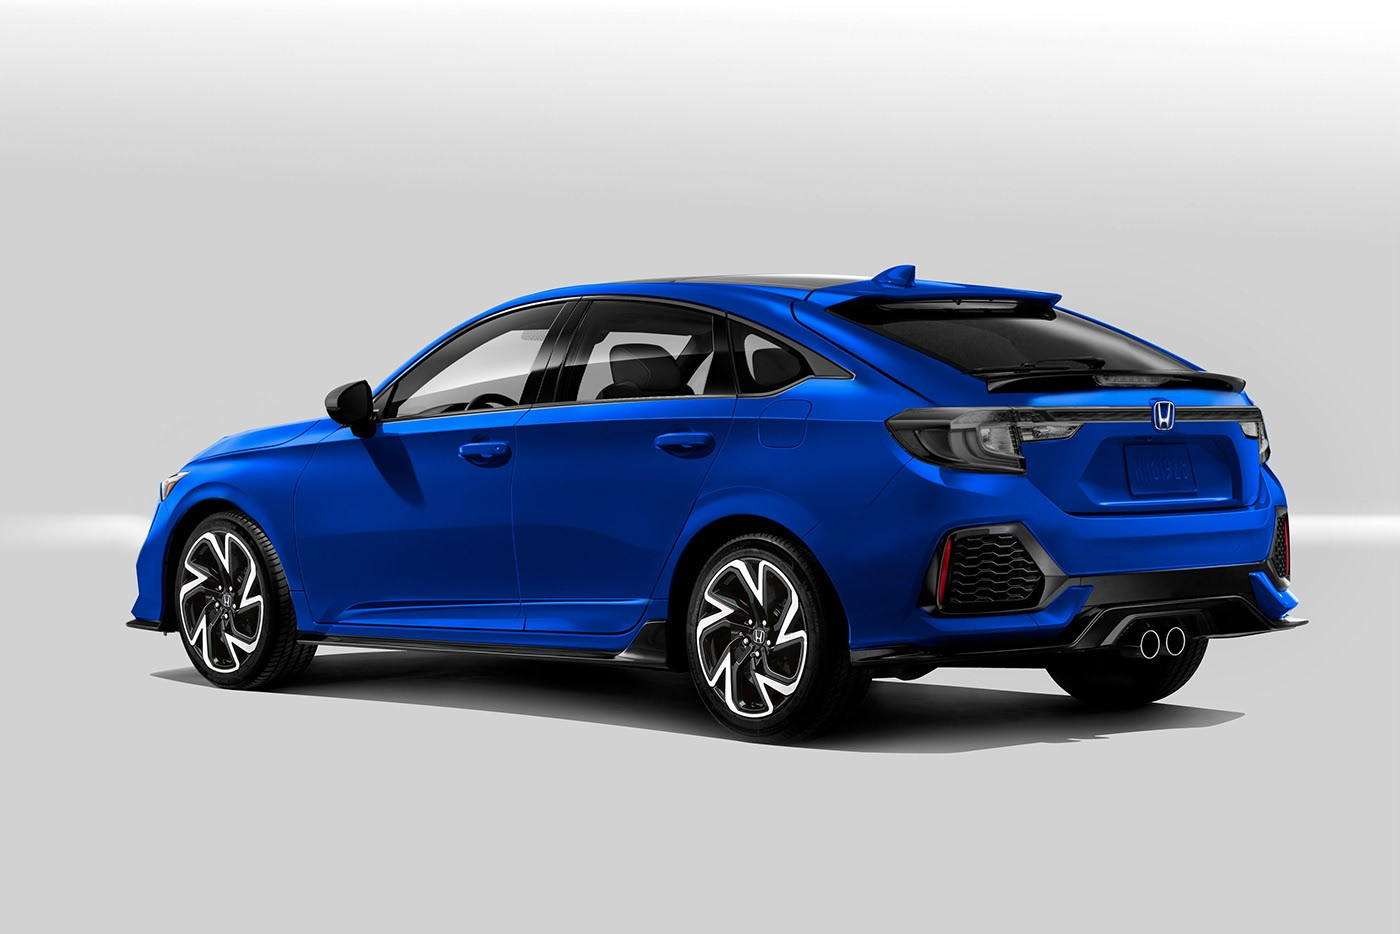 2022 Honda Civic Hatchback Looks Softer, More Grown Up in ...